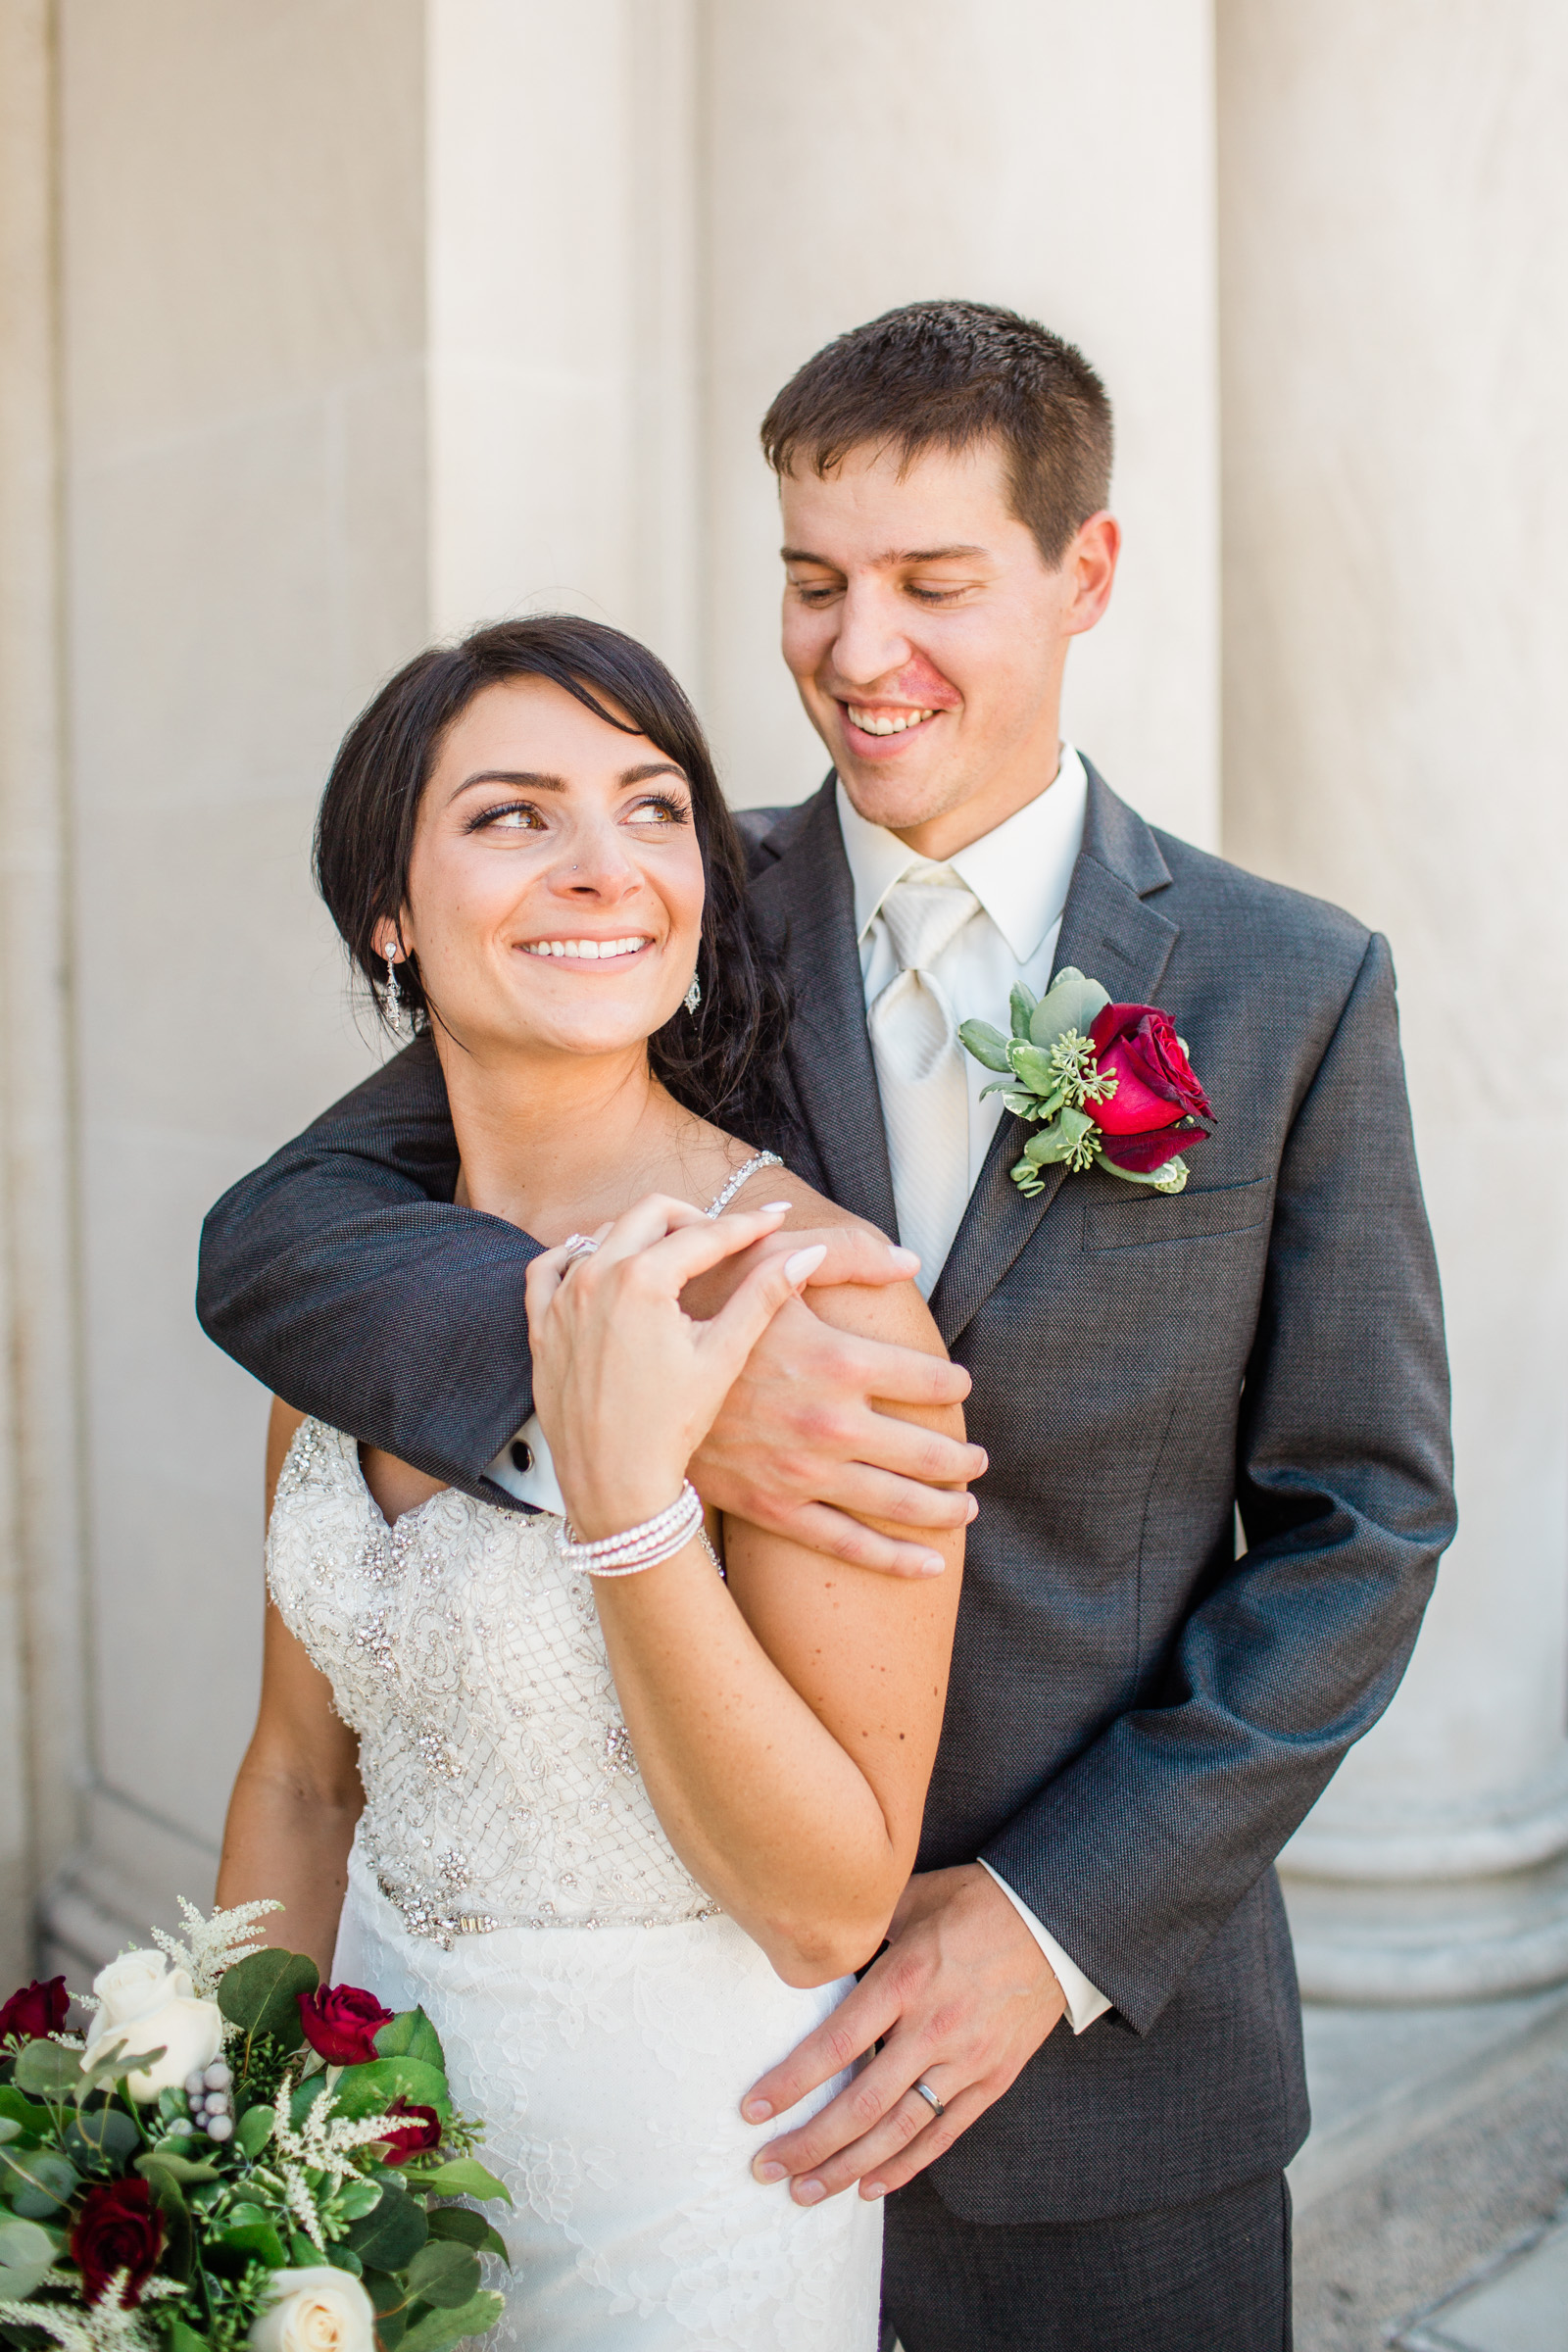 groom hugging bride while they both smile and bride holds flowers wedding Des Moines